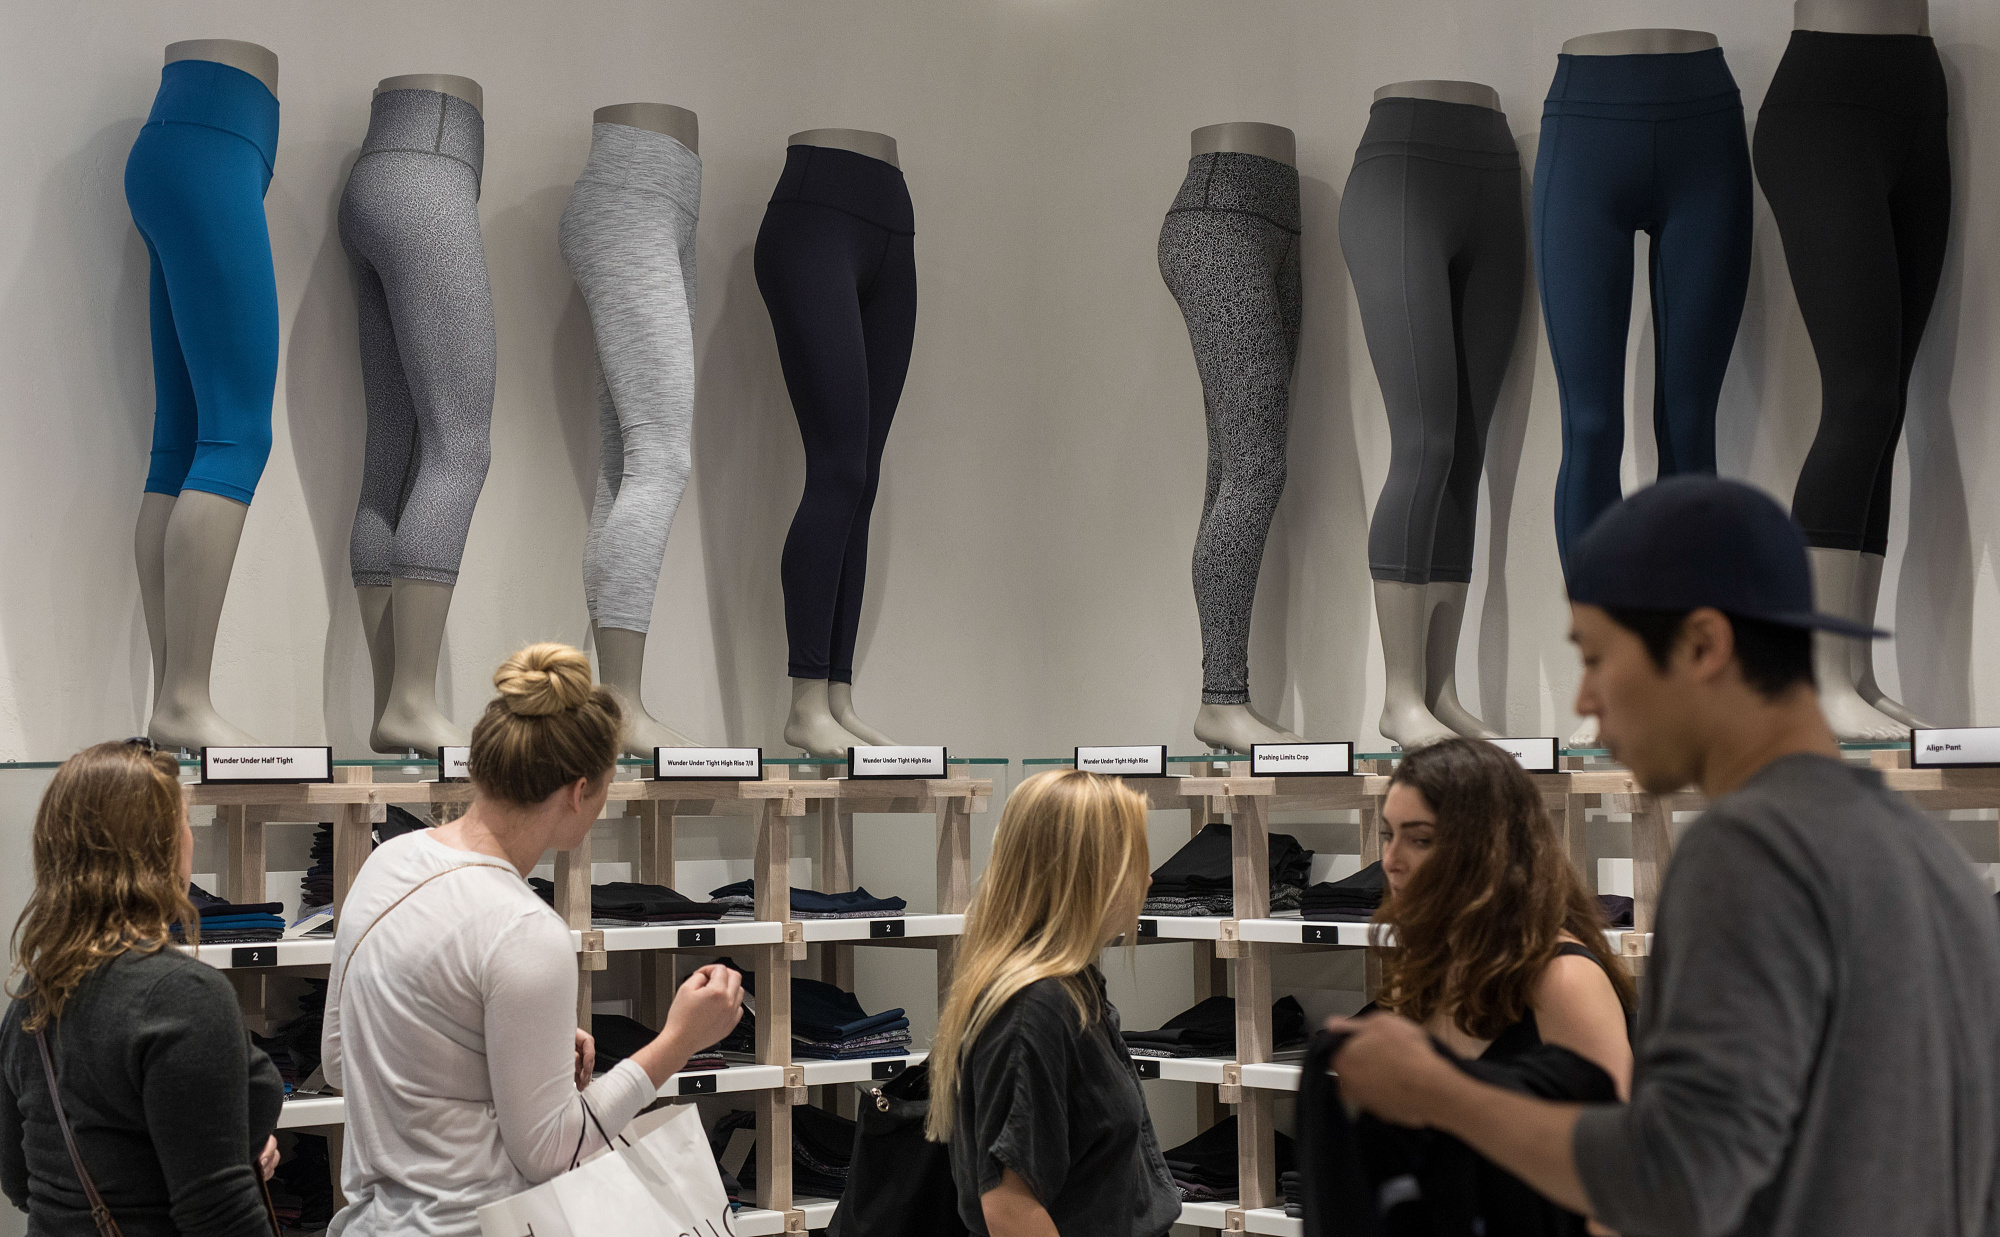 Shoppers look at clothes on display at the Lululemon store